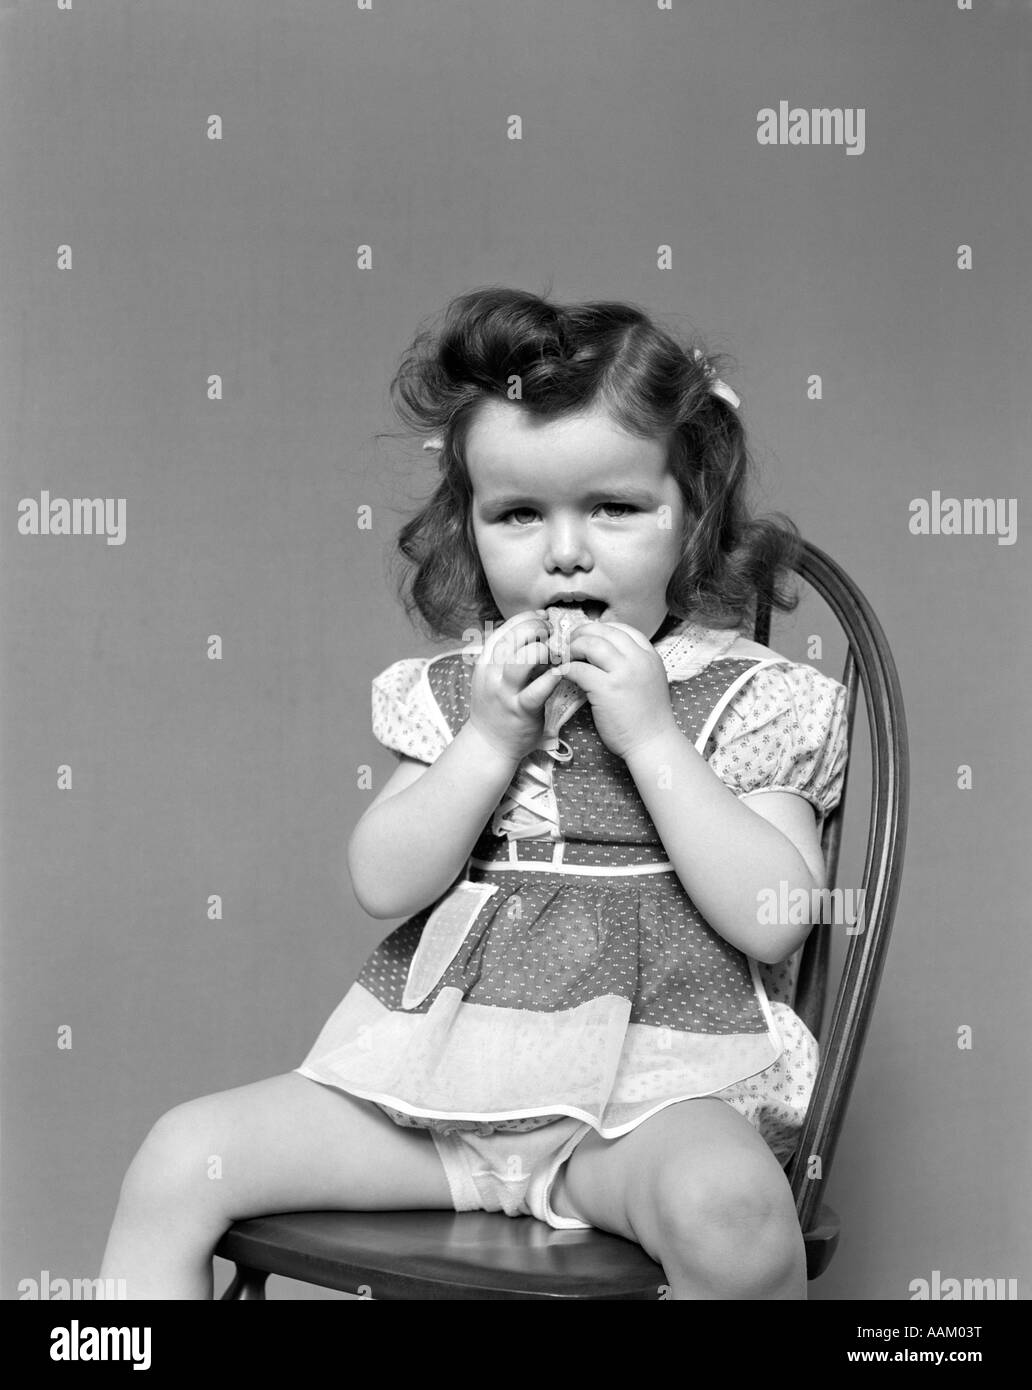 Black child sitting in chair - 1930s Toddler Girl Sit In Wooden Chair Polka Dot Dress Showing Underpants Eating A Cookie With Both Hands Vintage